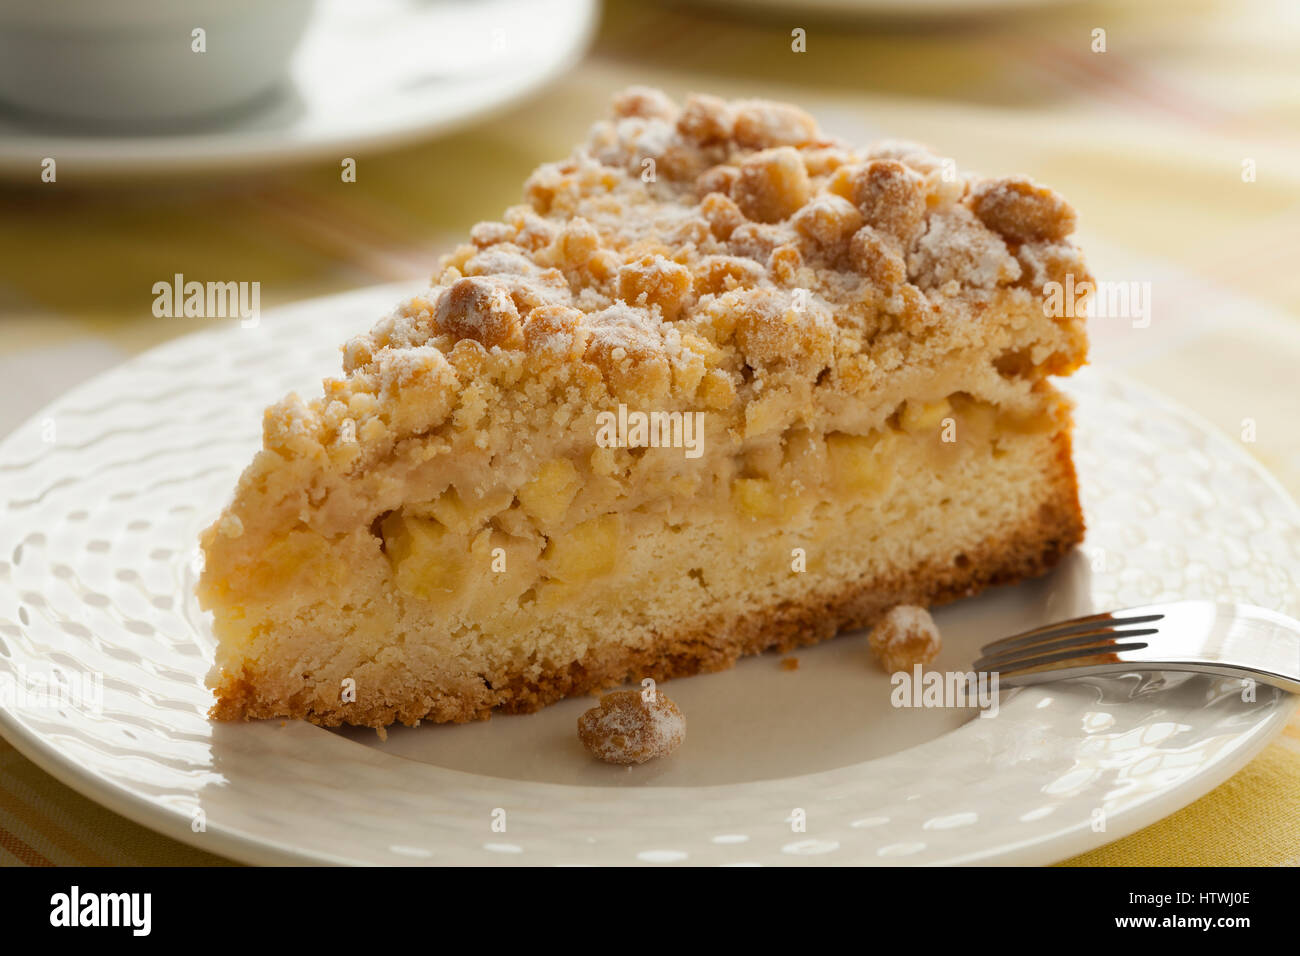 Piece of fresh baked homemade apple cake - Stock Image